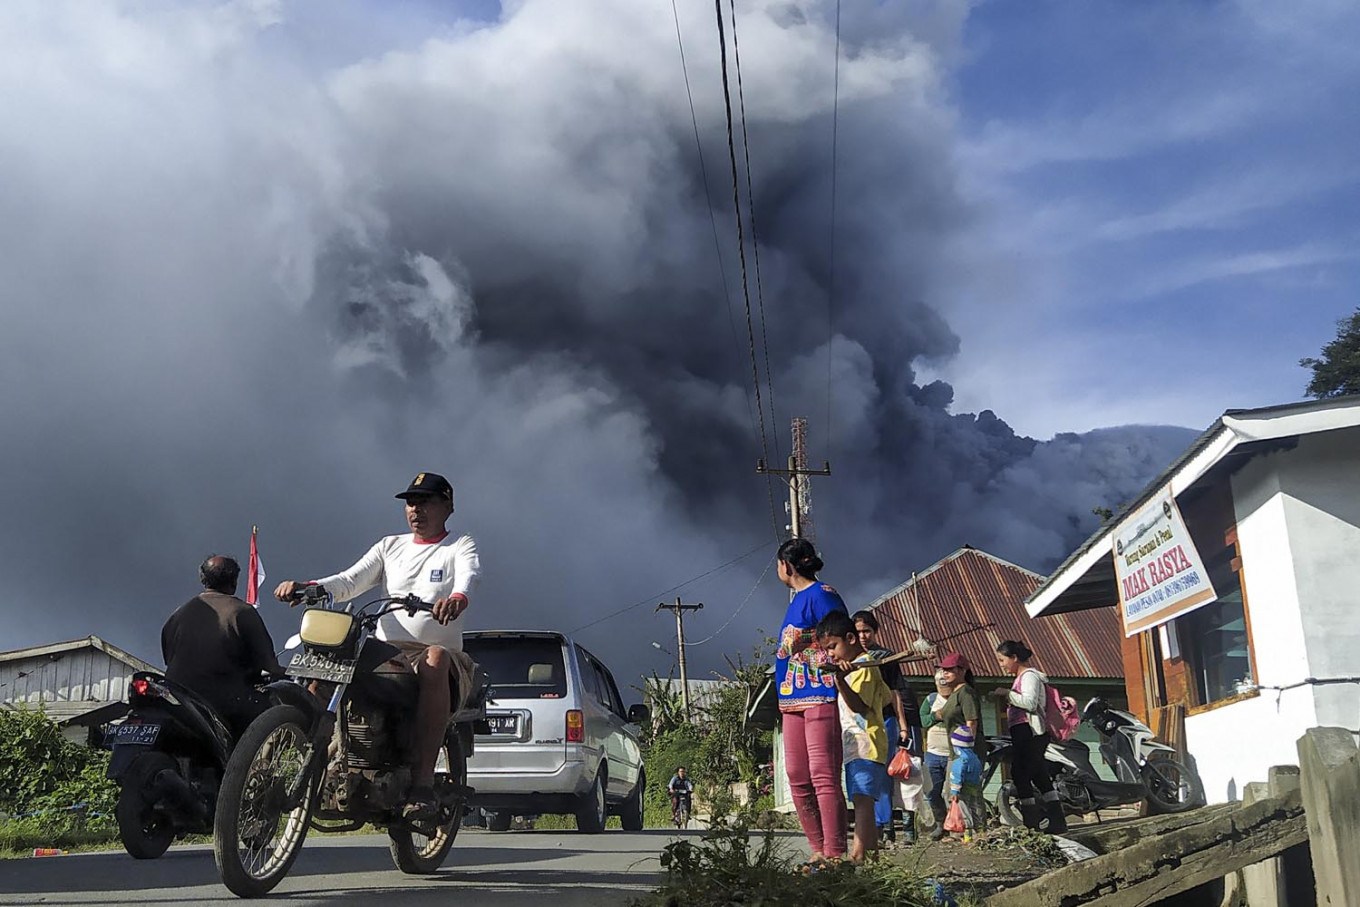 Karo farmers suffer Rp 41.8 billion in losses due to Mt. Sinabung eruption